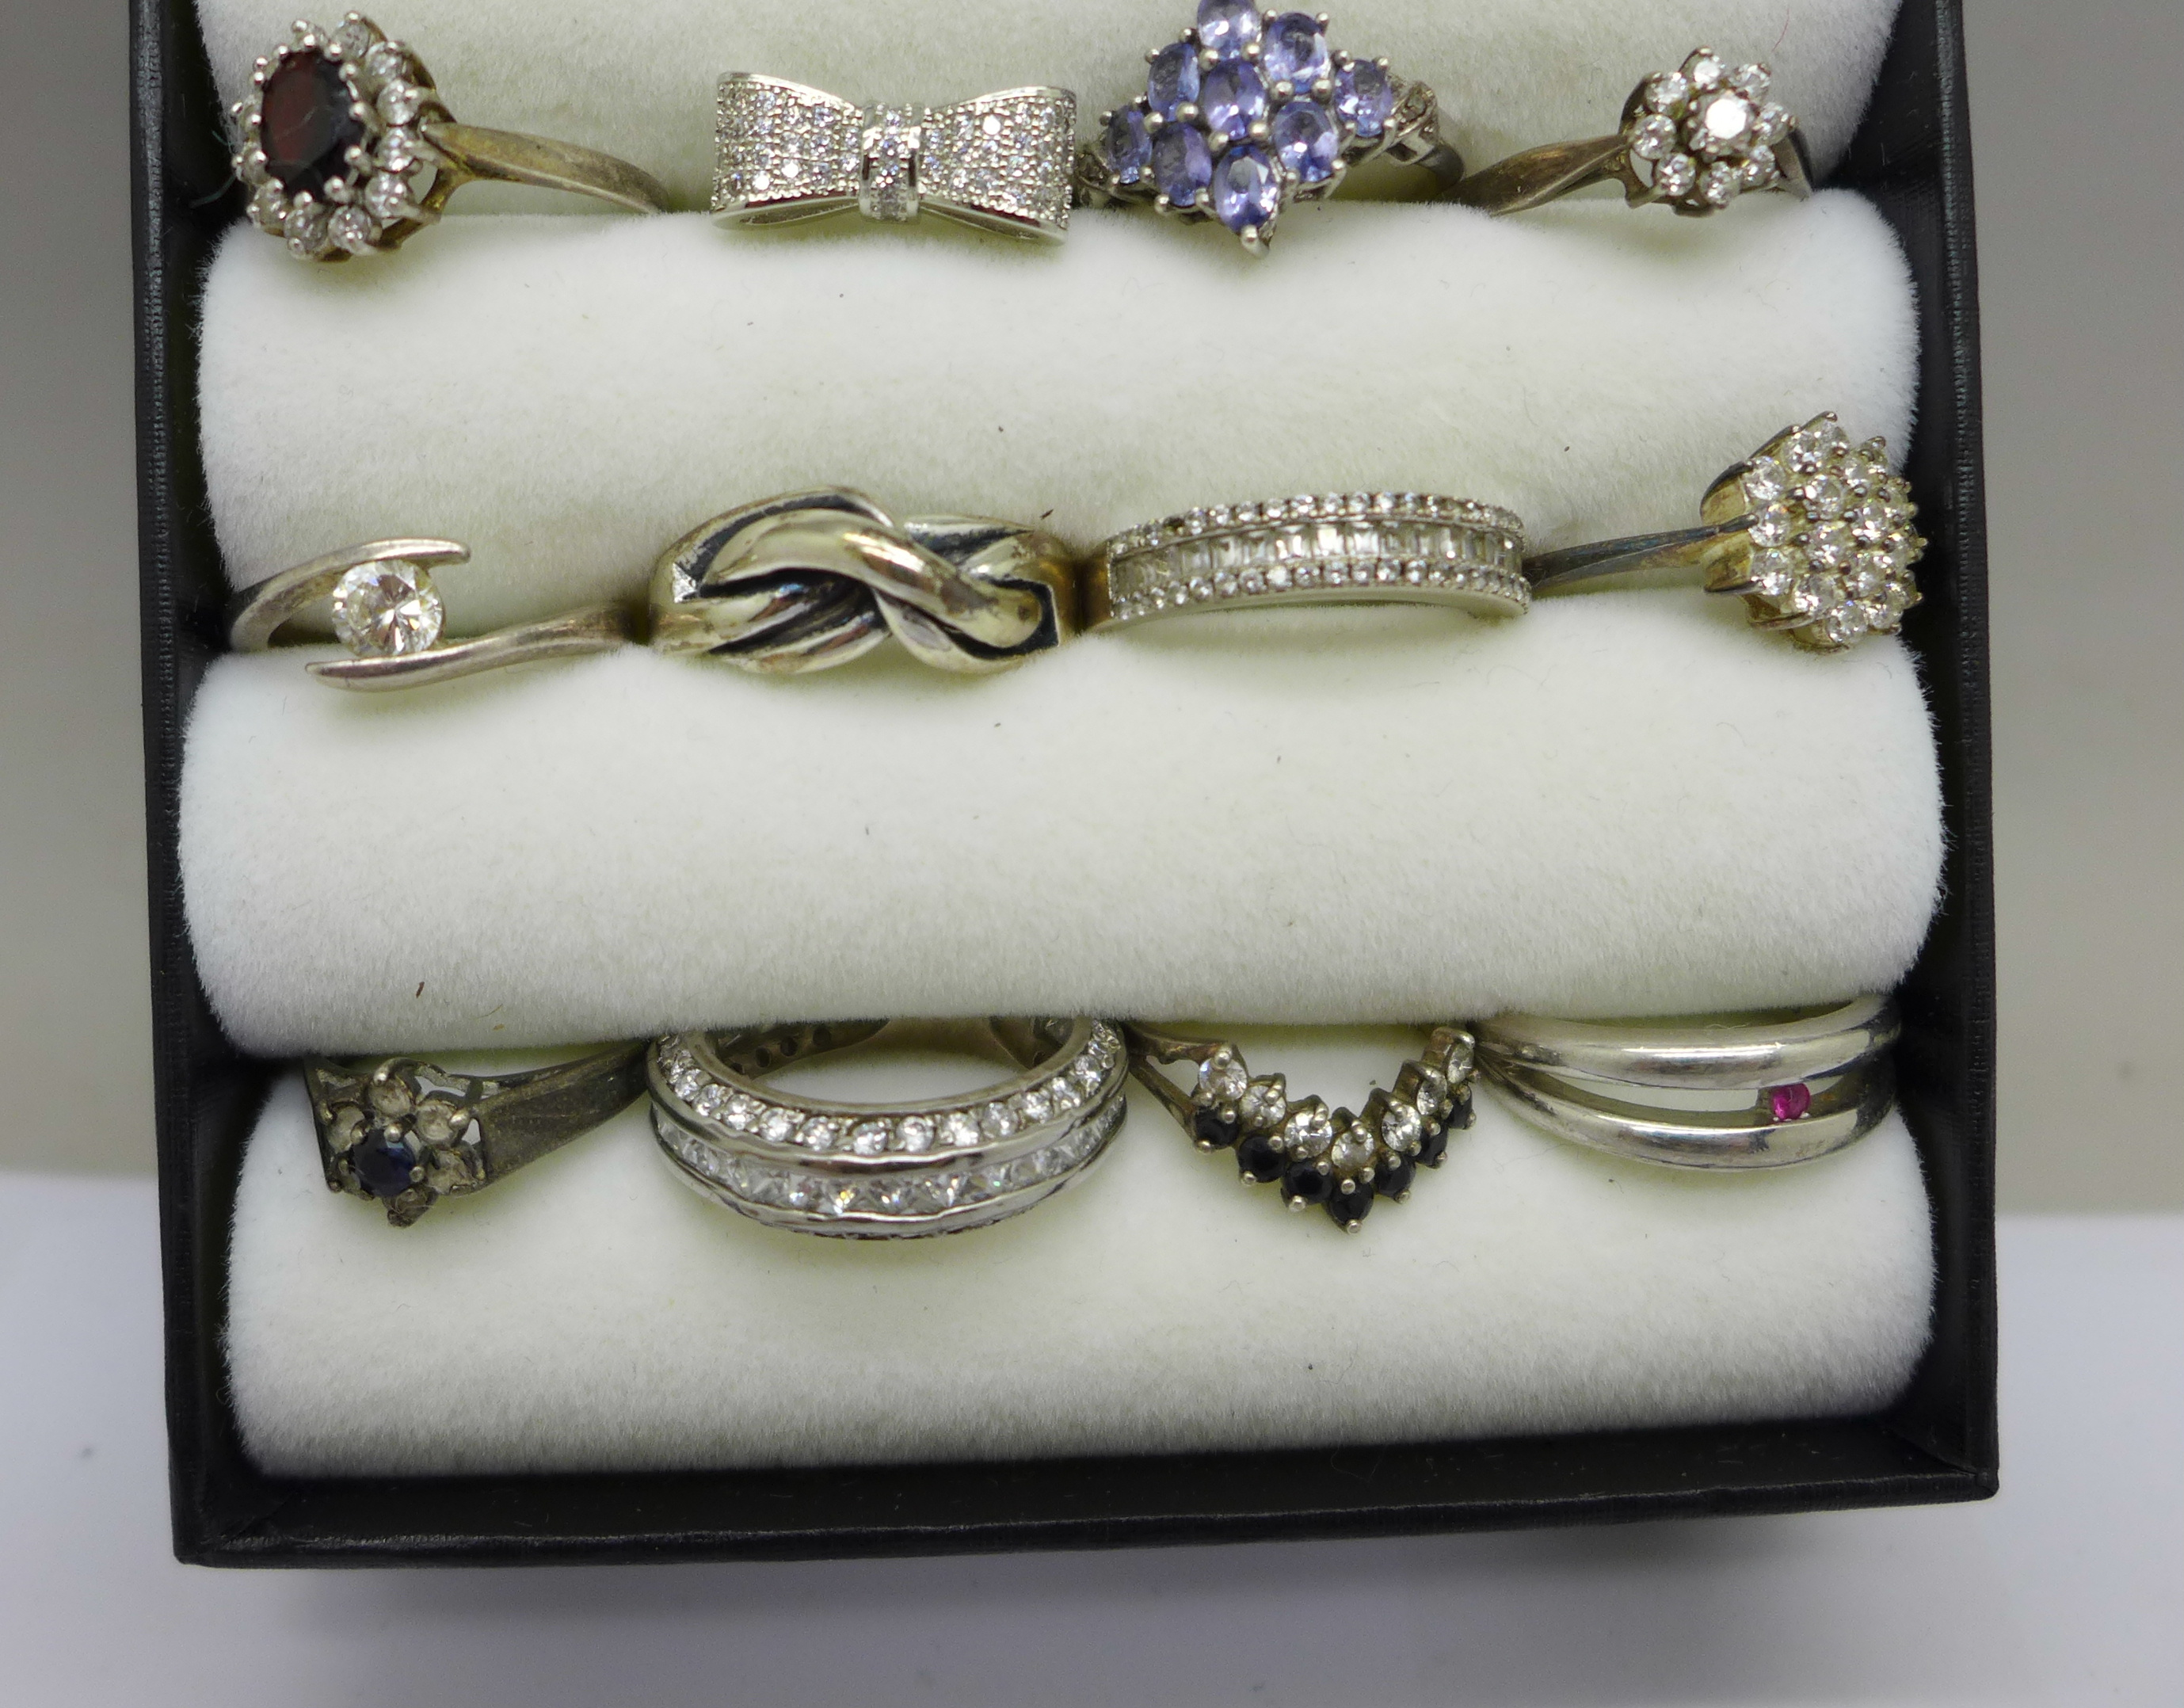 Twelve silver dress rings, most set with stones - Image 3 of 3